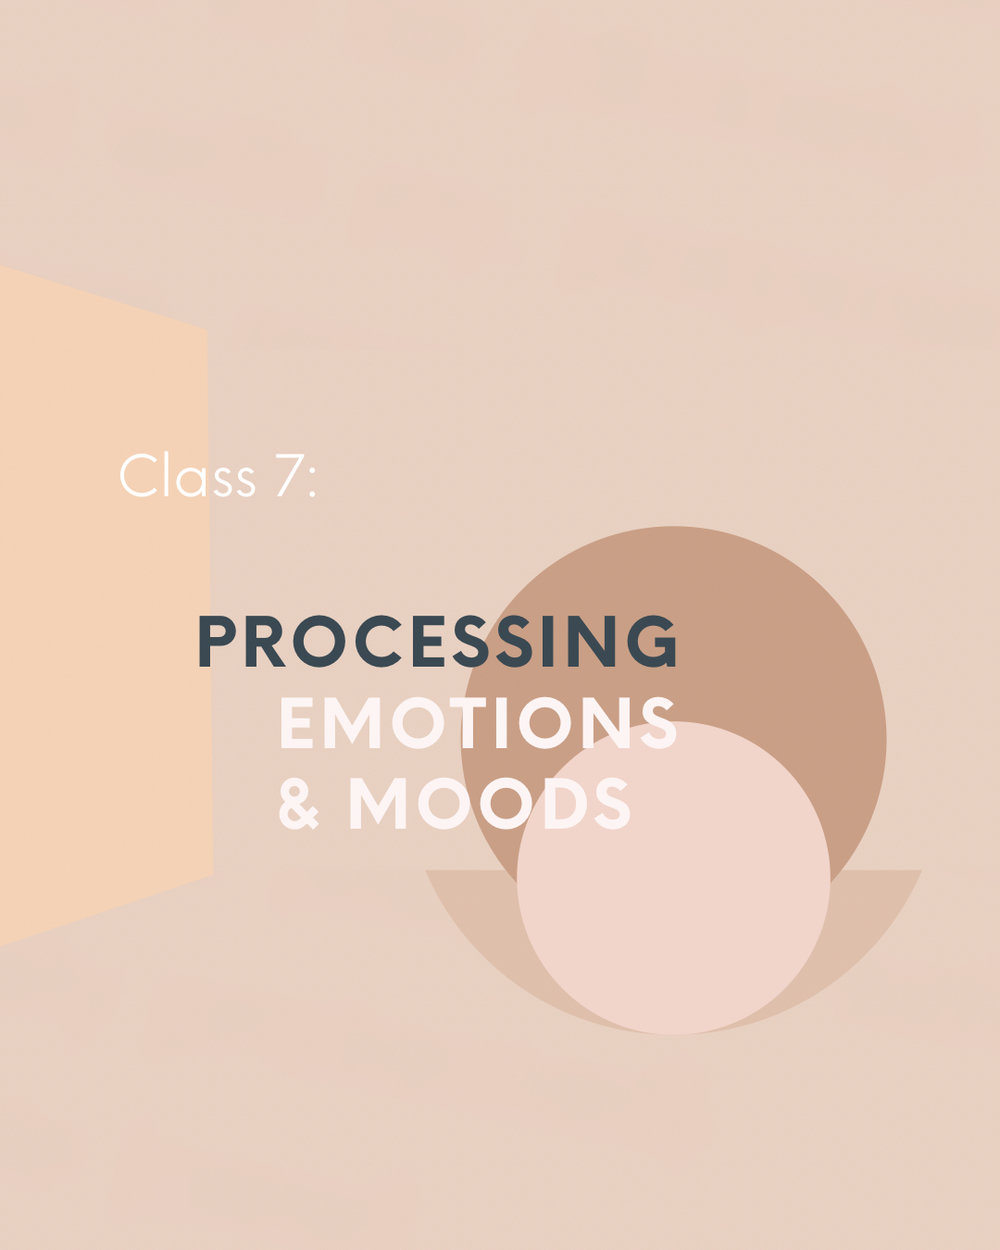 Processing Emotions & Moods - $15Emotions are teachers and guides.This class is about empowering you to (effectively) feel what you need to feel–and to (effectively) release all else, go beyond, and rise above.Learn the empowering art of processing your emotions and moods, this Saturday!